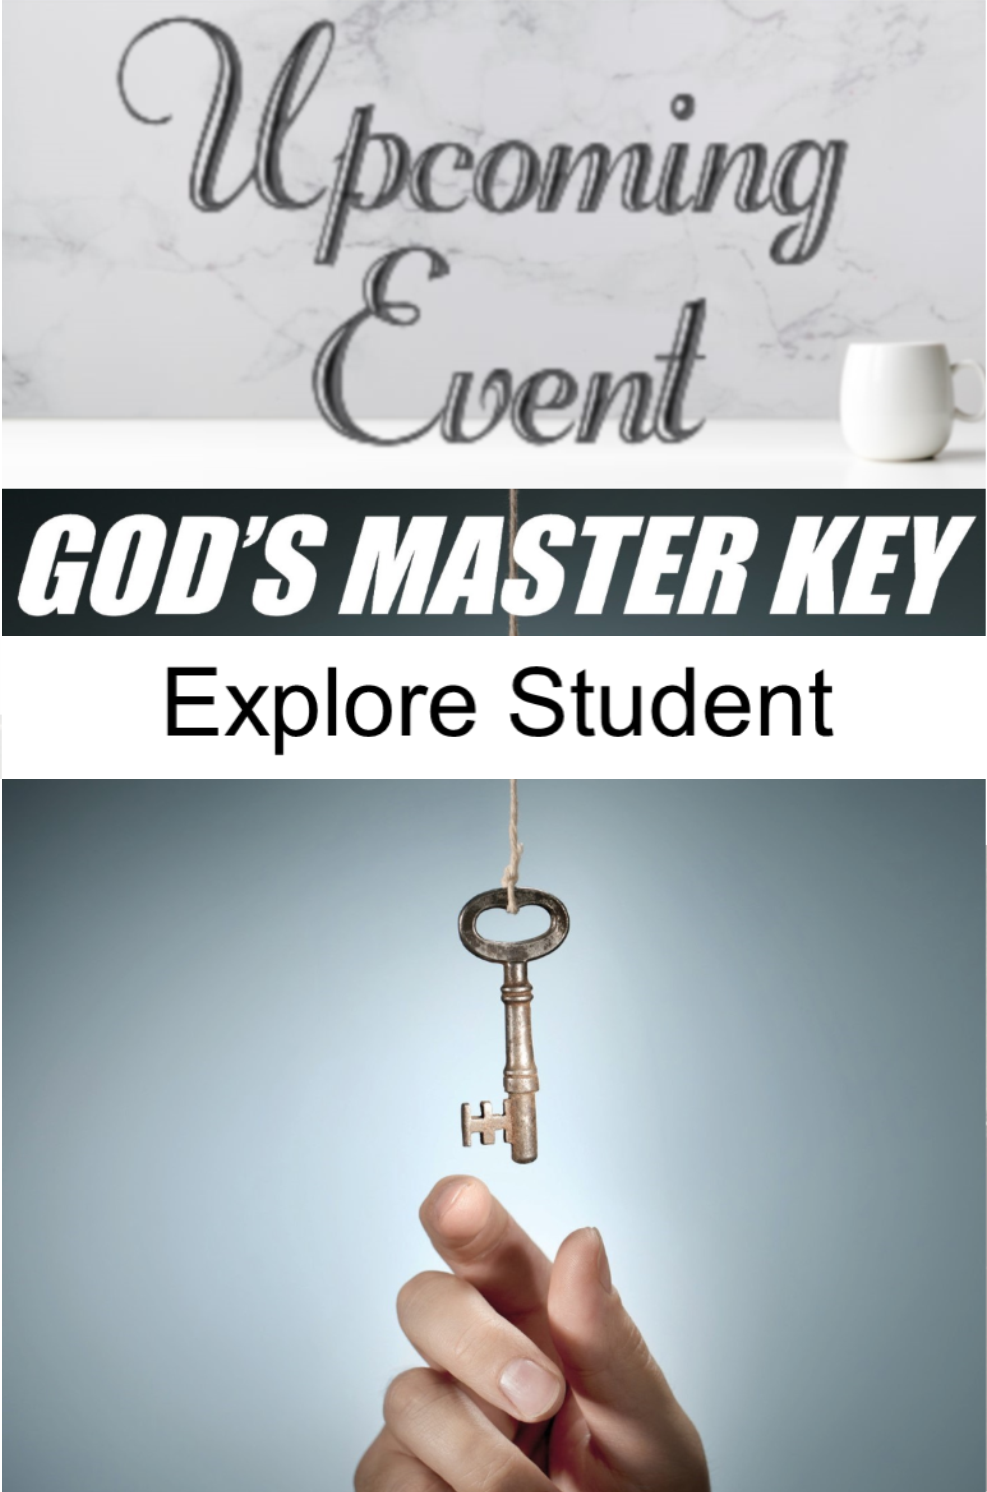 2020 God's Master Key (Explore A Student)